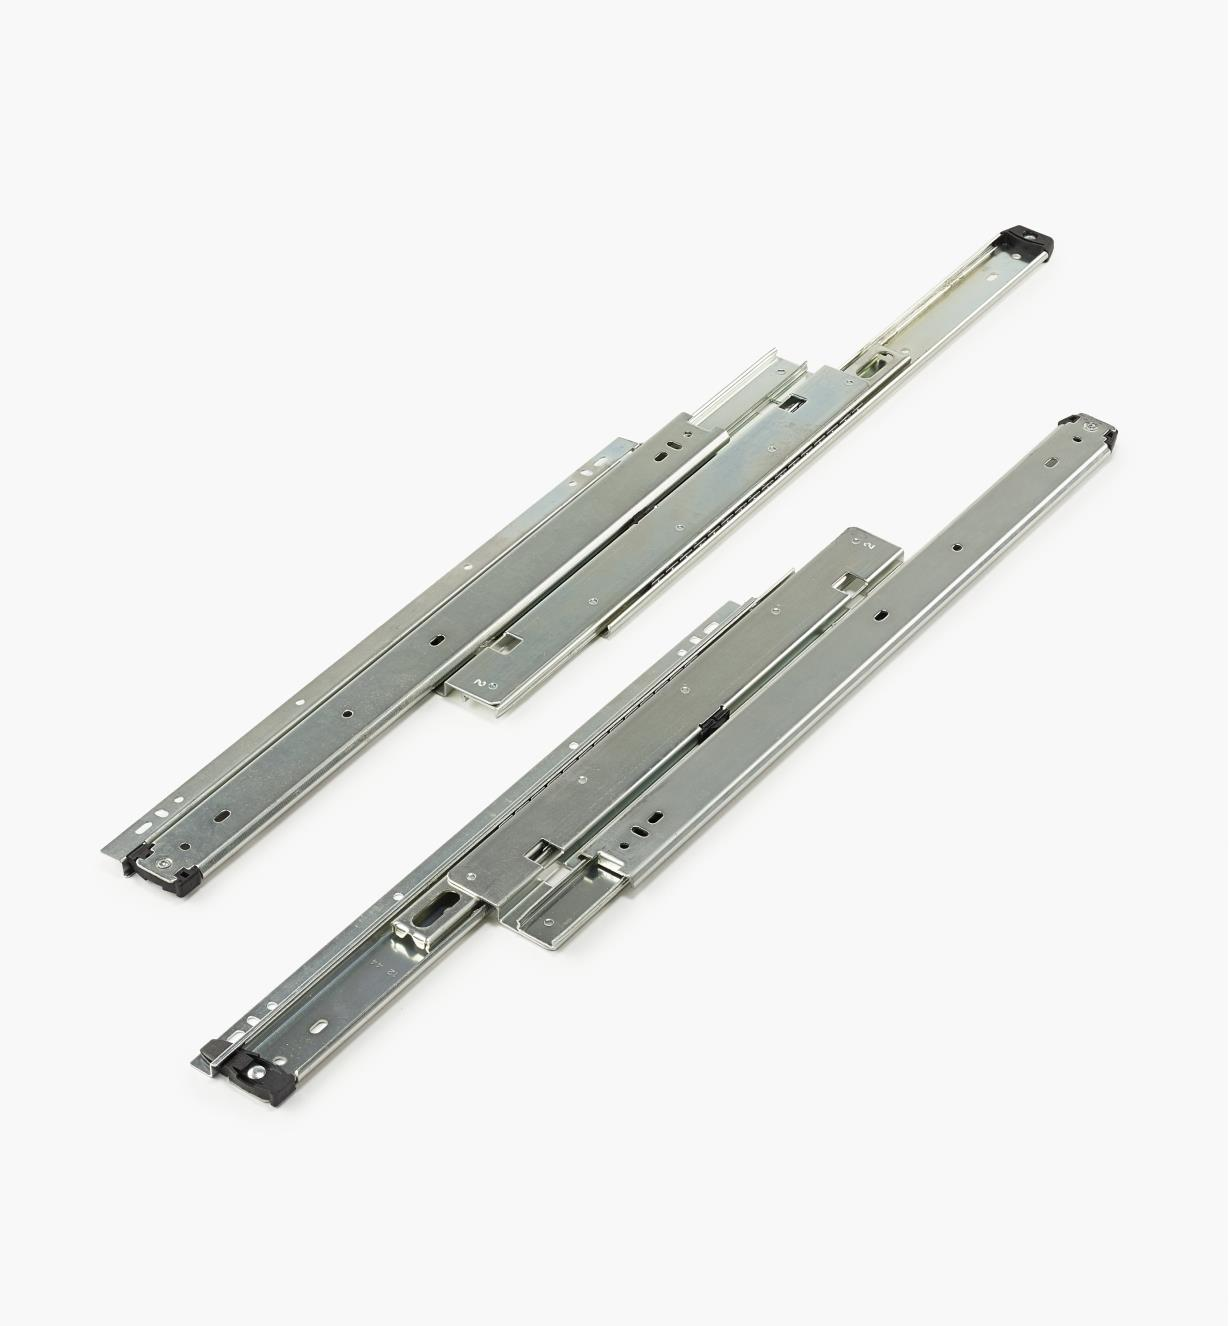 "02K3418 - 18"" Double-Tiered Slides, pair"